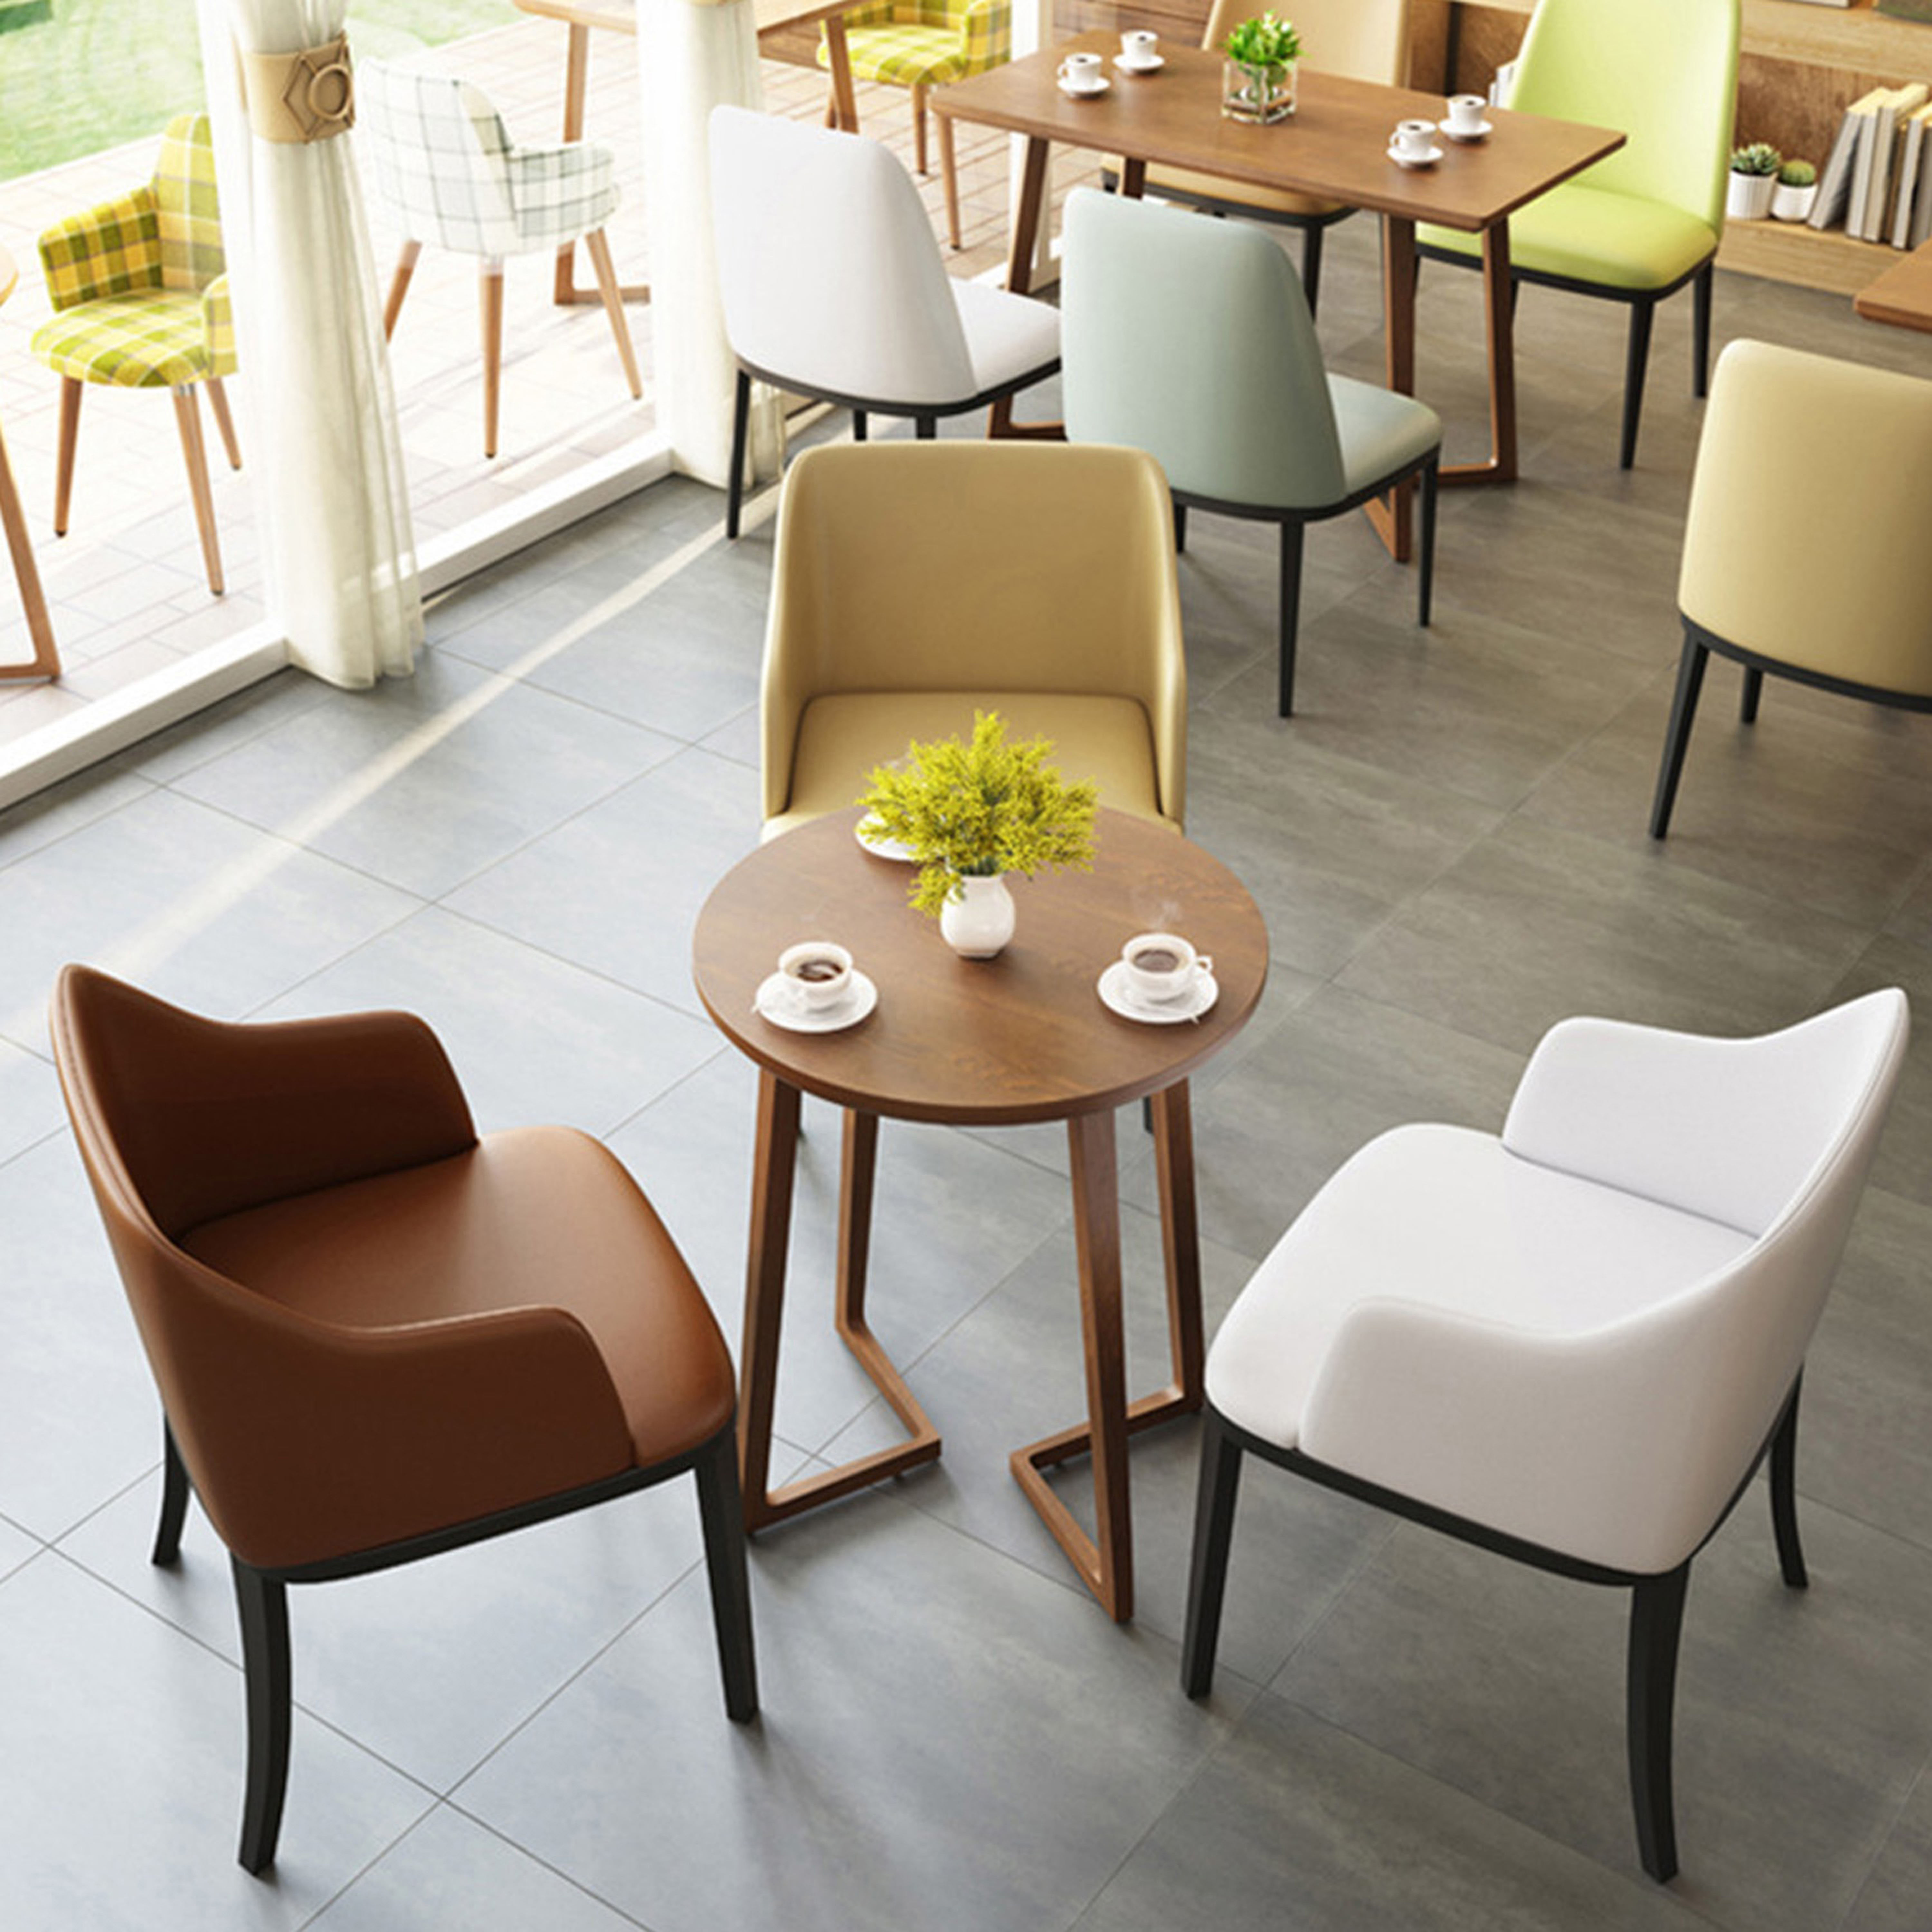 Modern Coffee Shop Cafe Chairs And Tables Buy Cafe Chairs And Tables Modern Cafe Chairs And Tables Coffee Shop Tables And Chairs Product On Alibaba Com